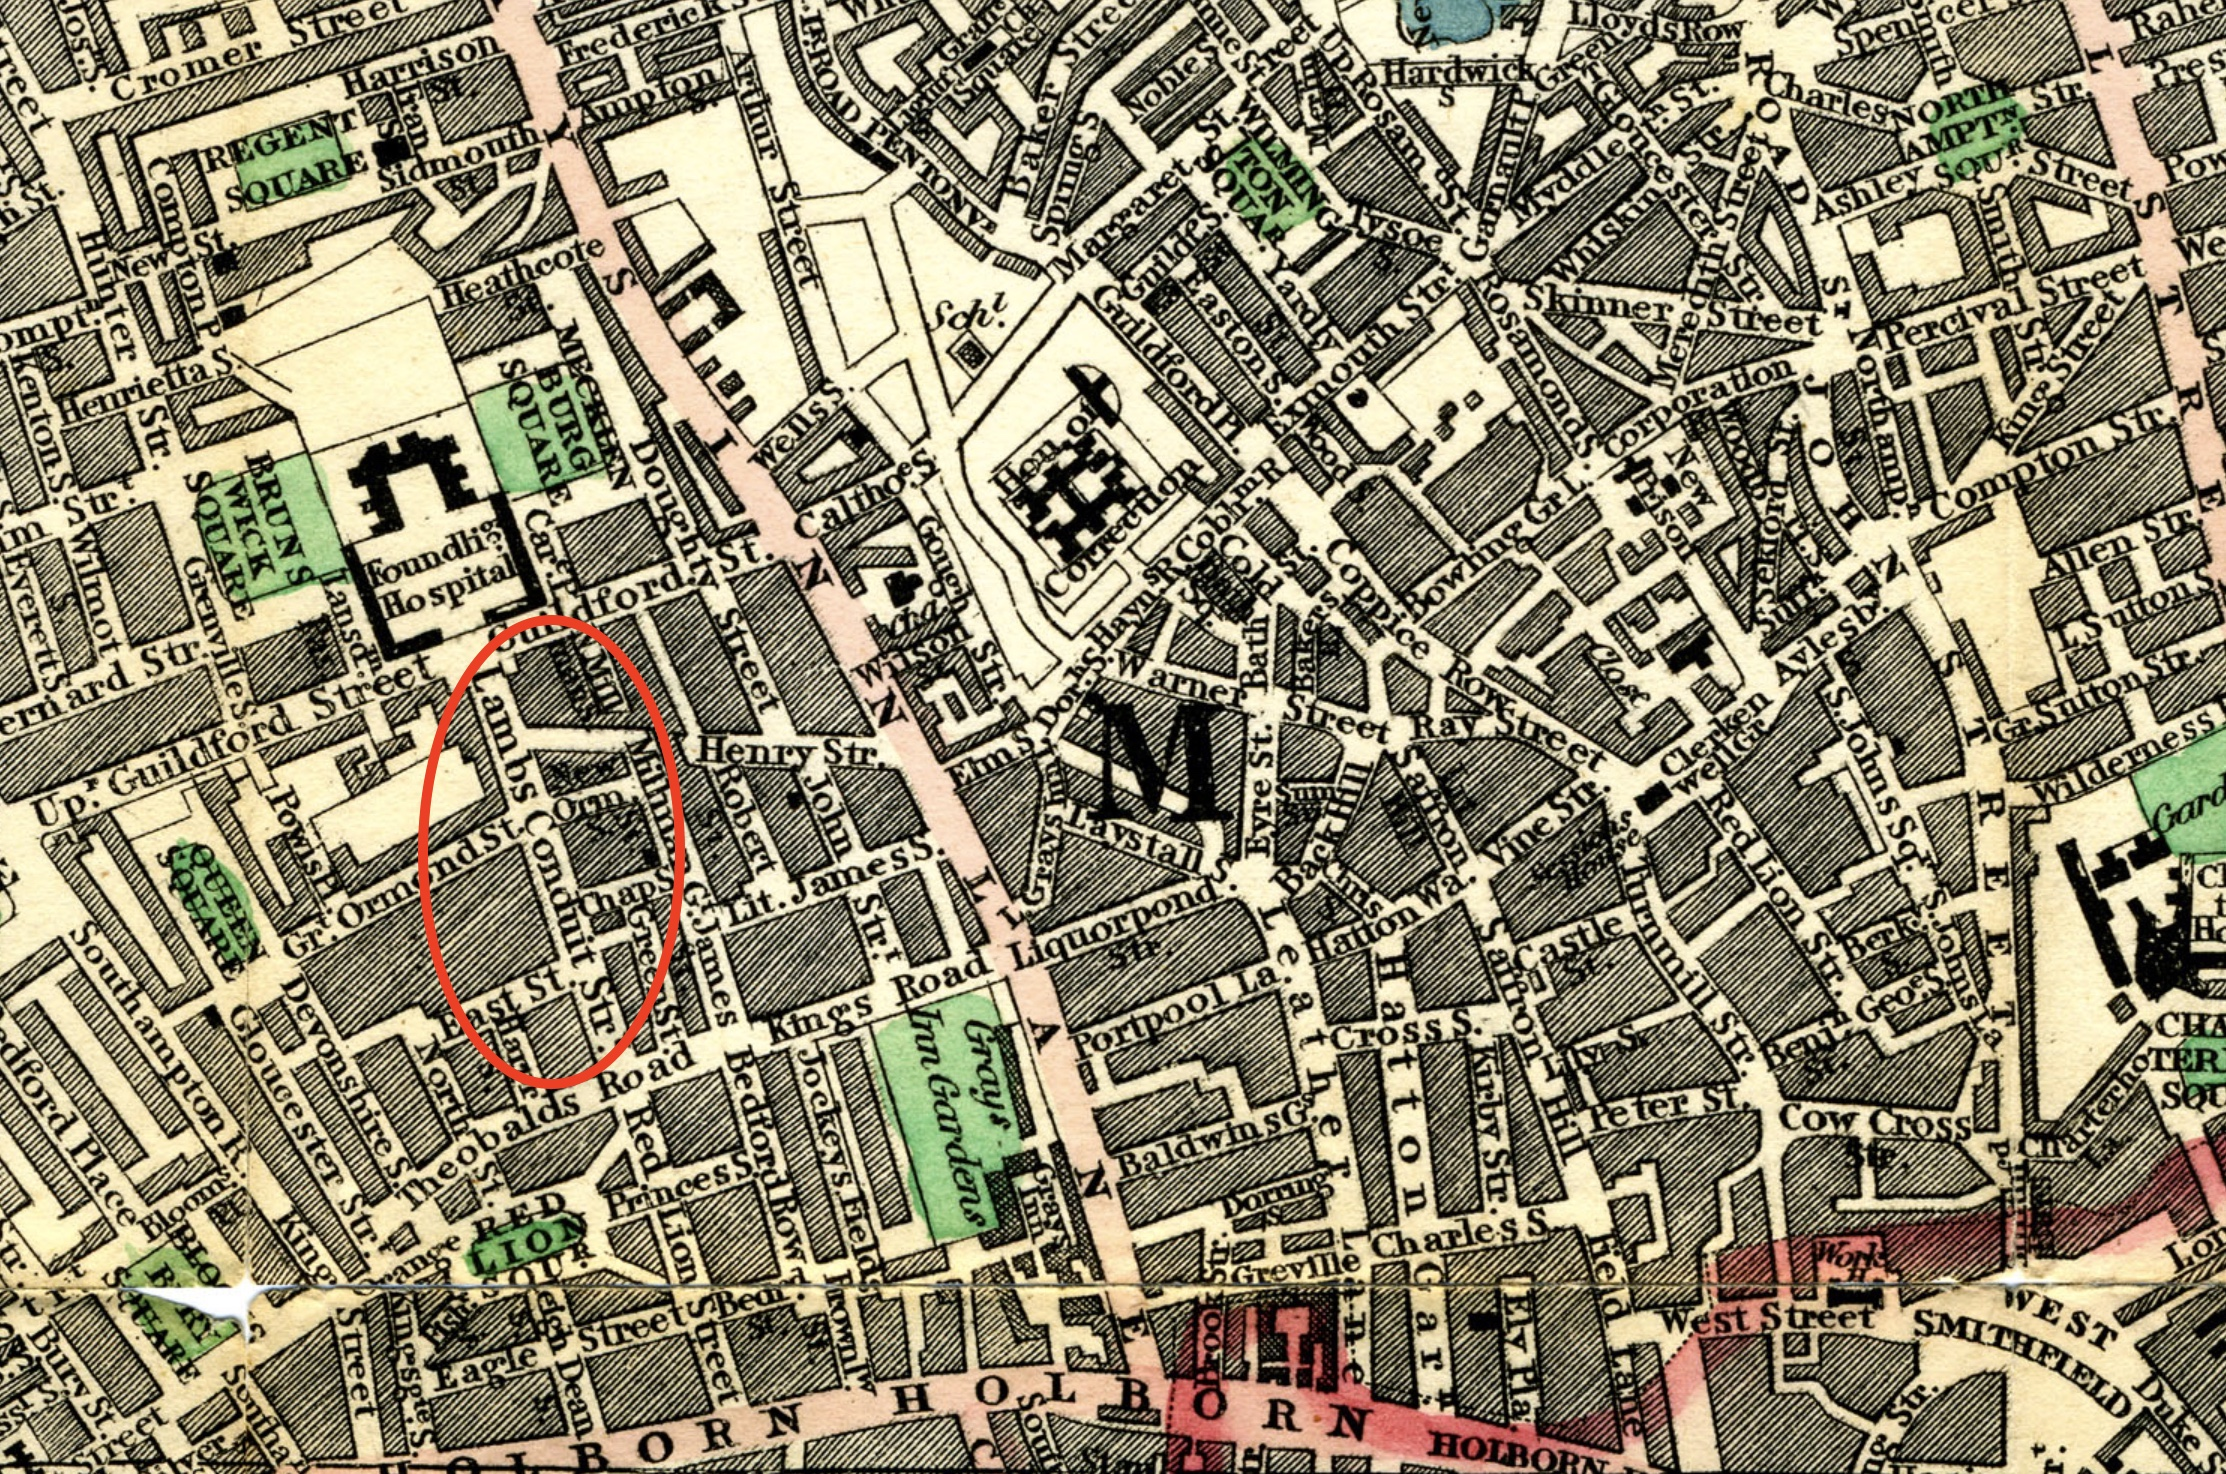 Lambs Conduit Street, Cary's 1818 Map. Click to enlarge.